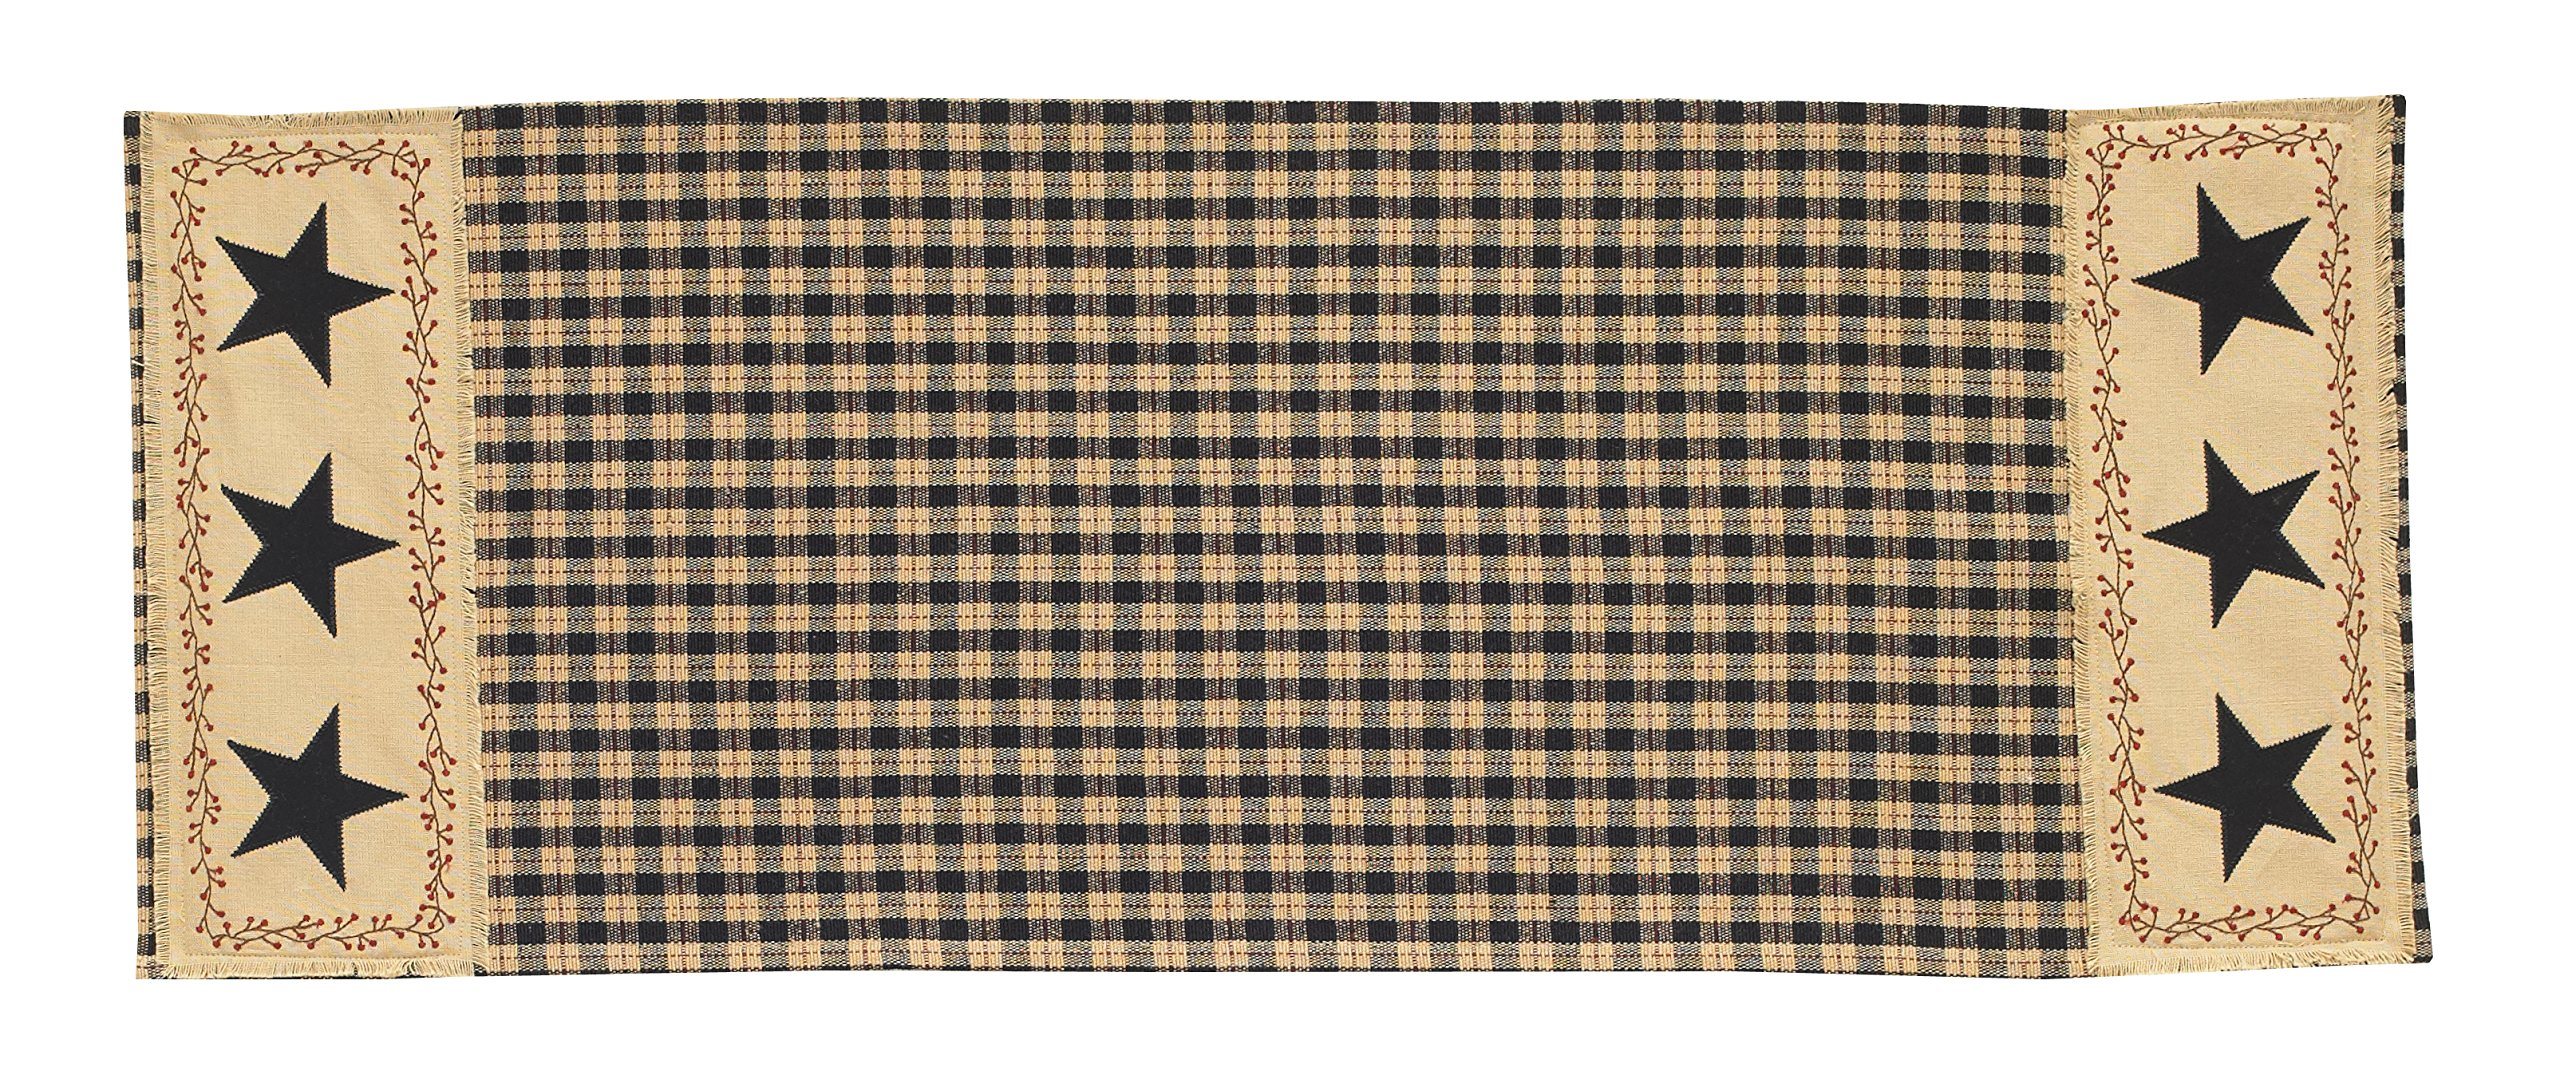 Park Designs Star Patch Table Runner, 13 x 36